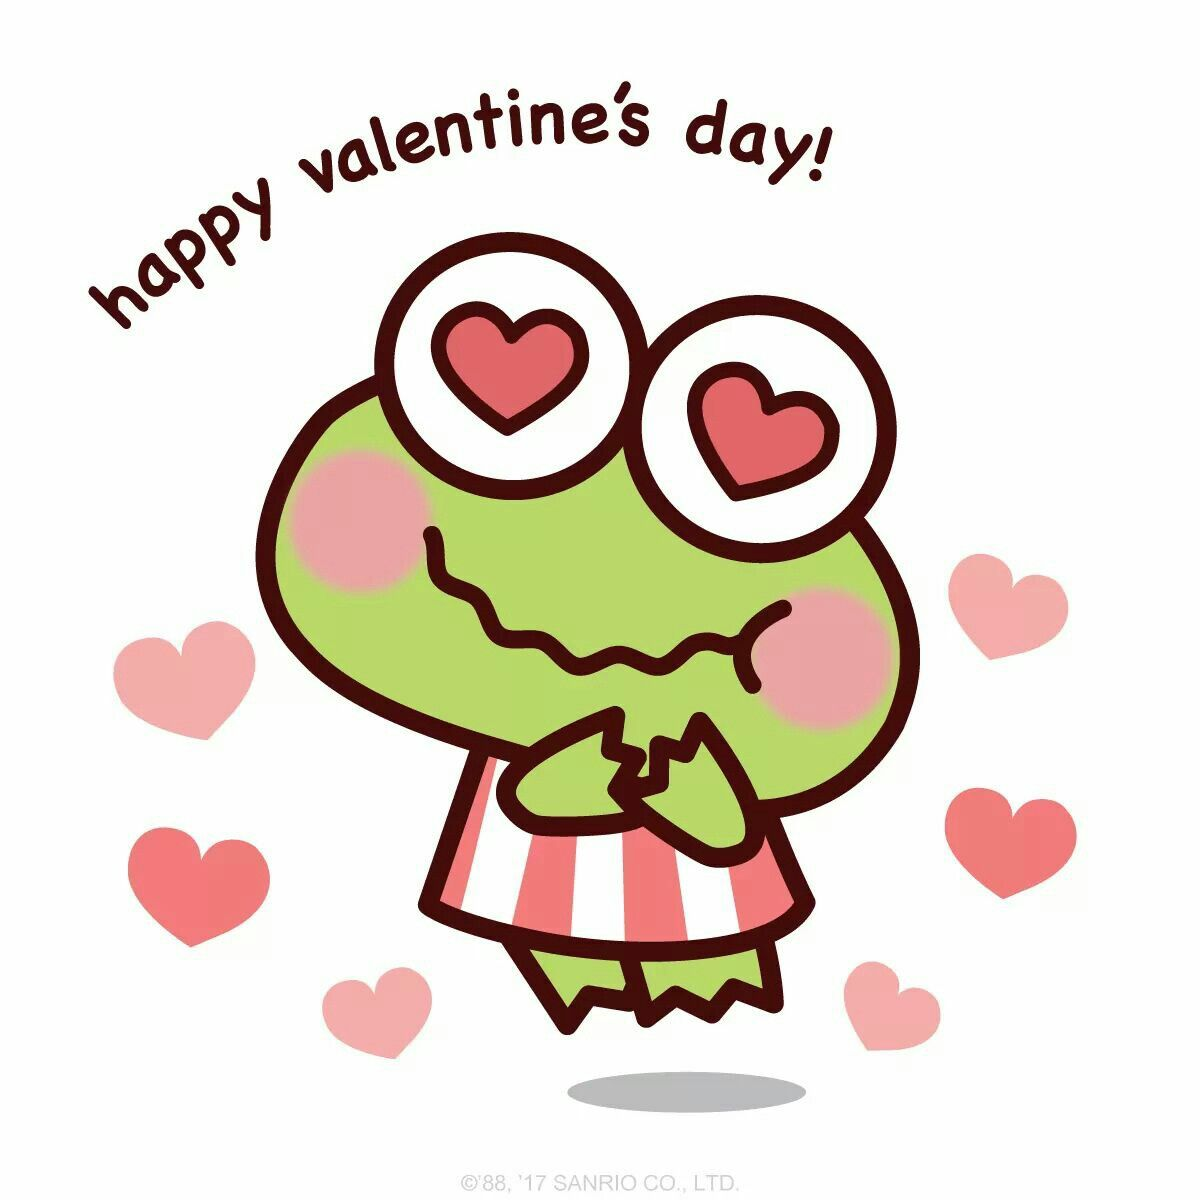 Happy Valentine\'s Day! | Keroppi | Pinterest | Sanrio and Hello kitty